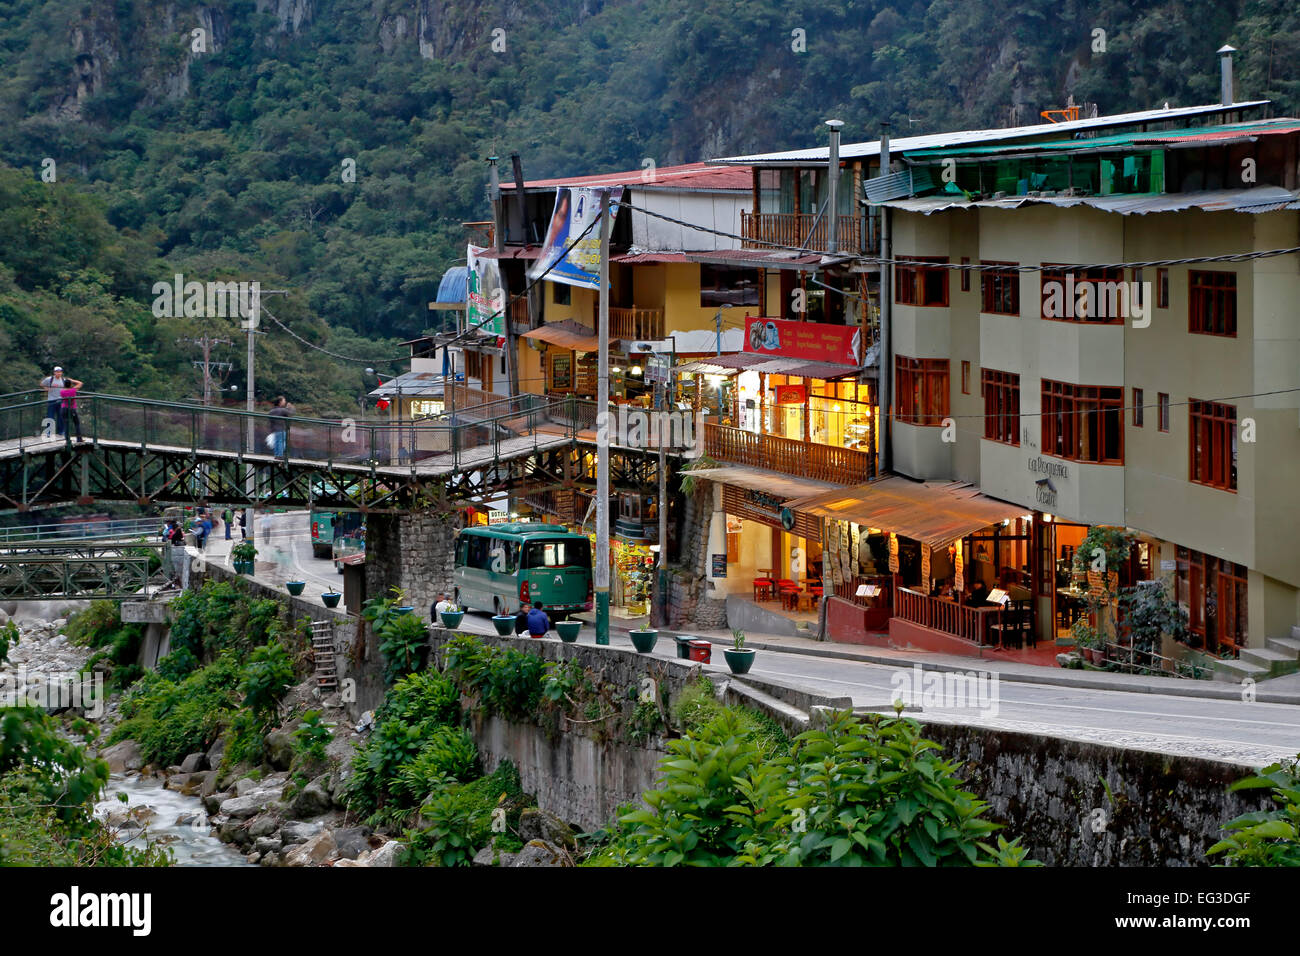 Ramshackle architecture, Aguas Calientes, aka Machu Picchu Pueblo, Urubamba, Cusco, Peru Stock Photo